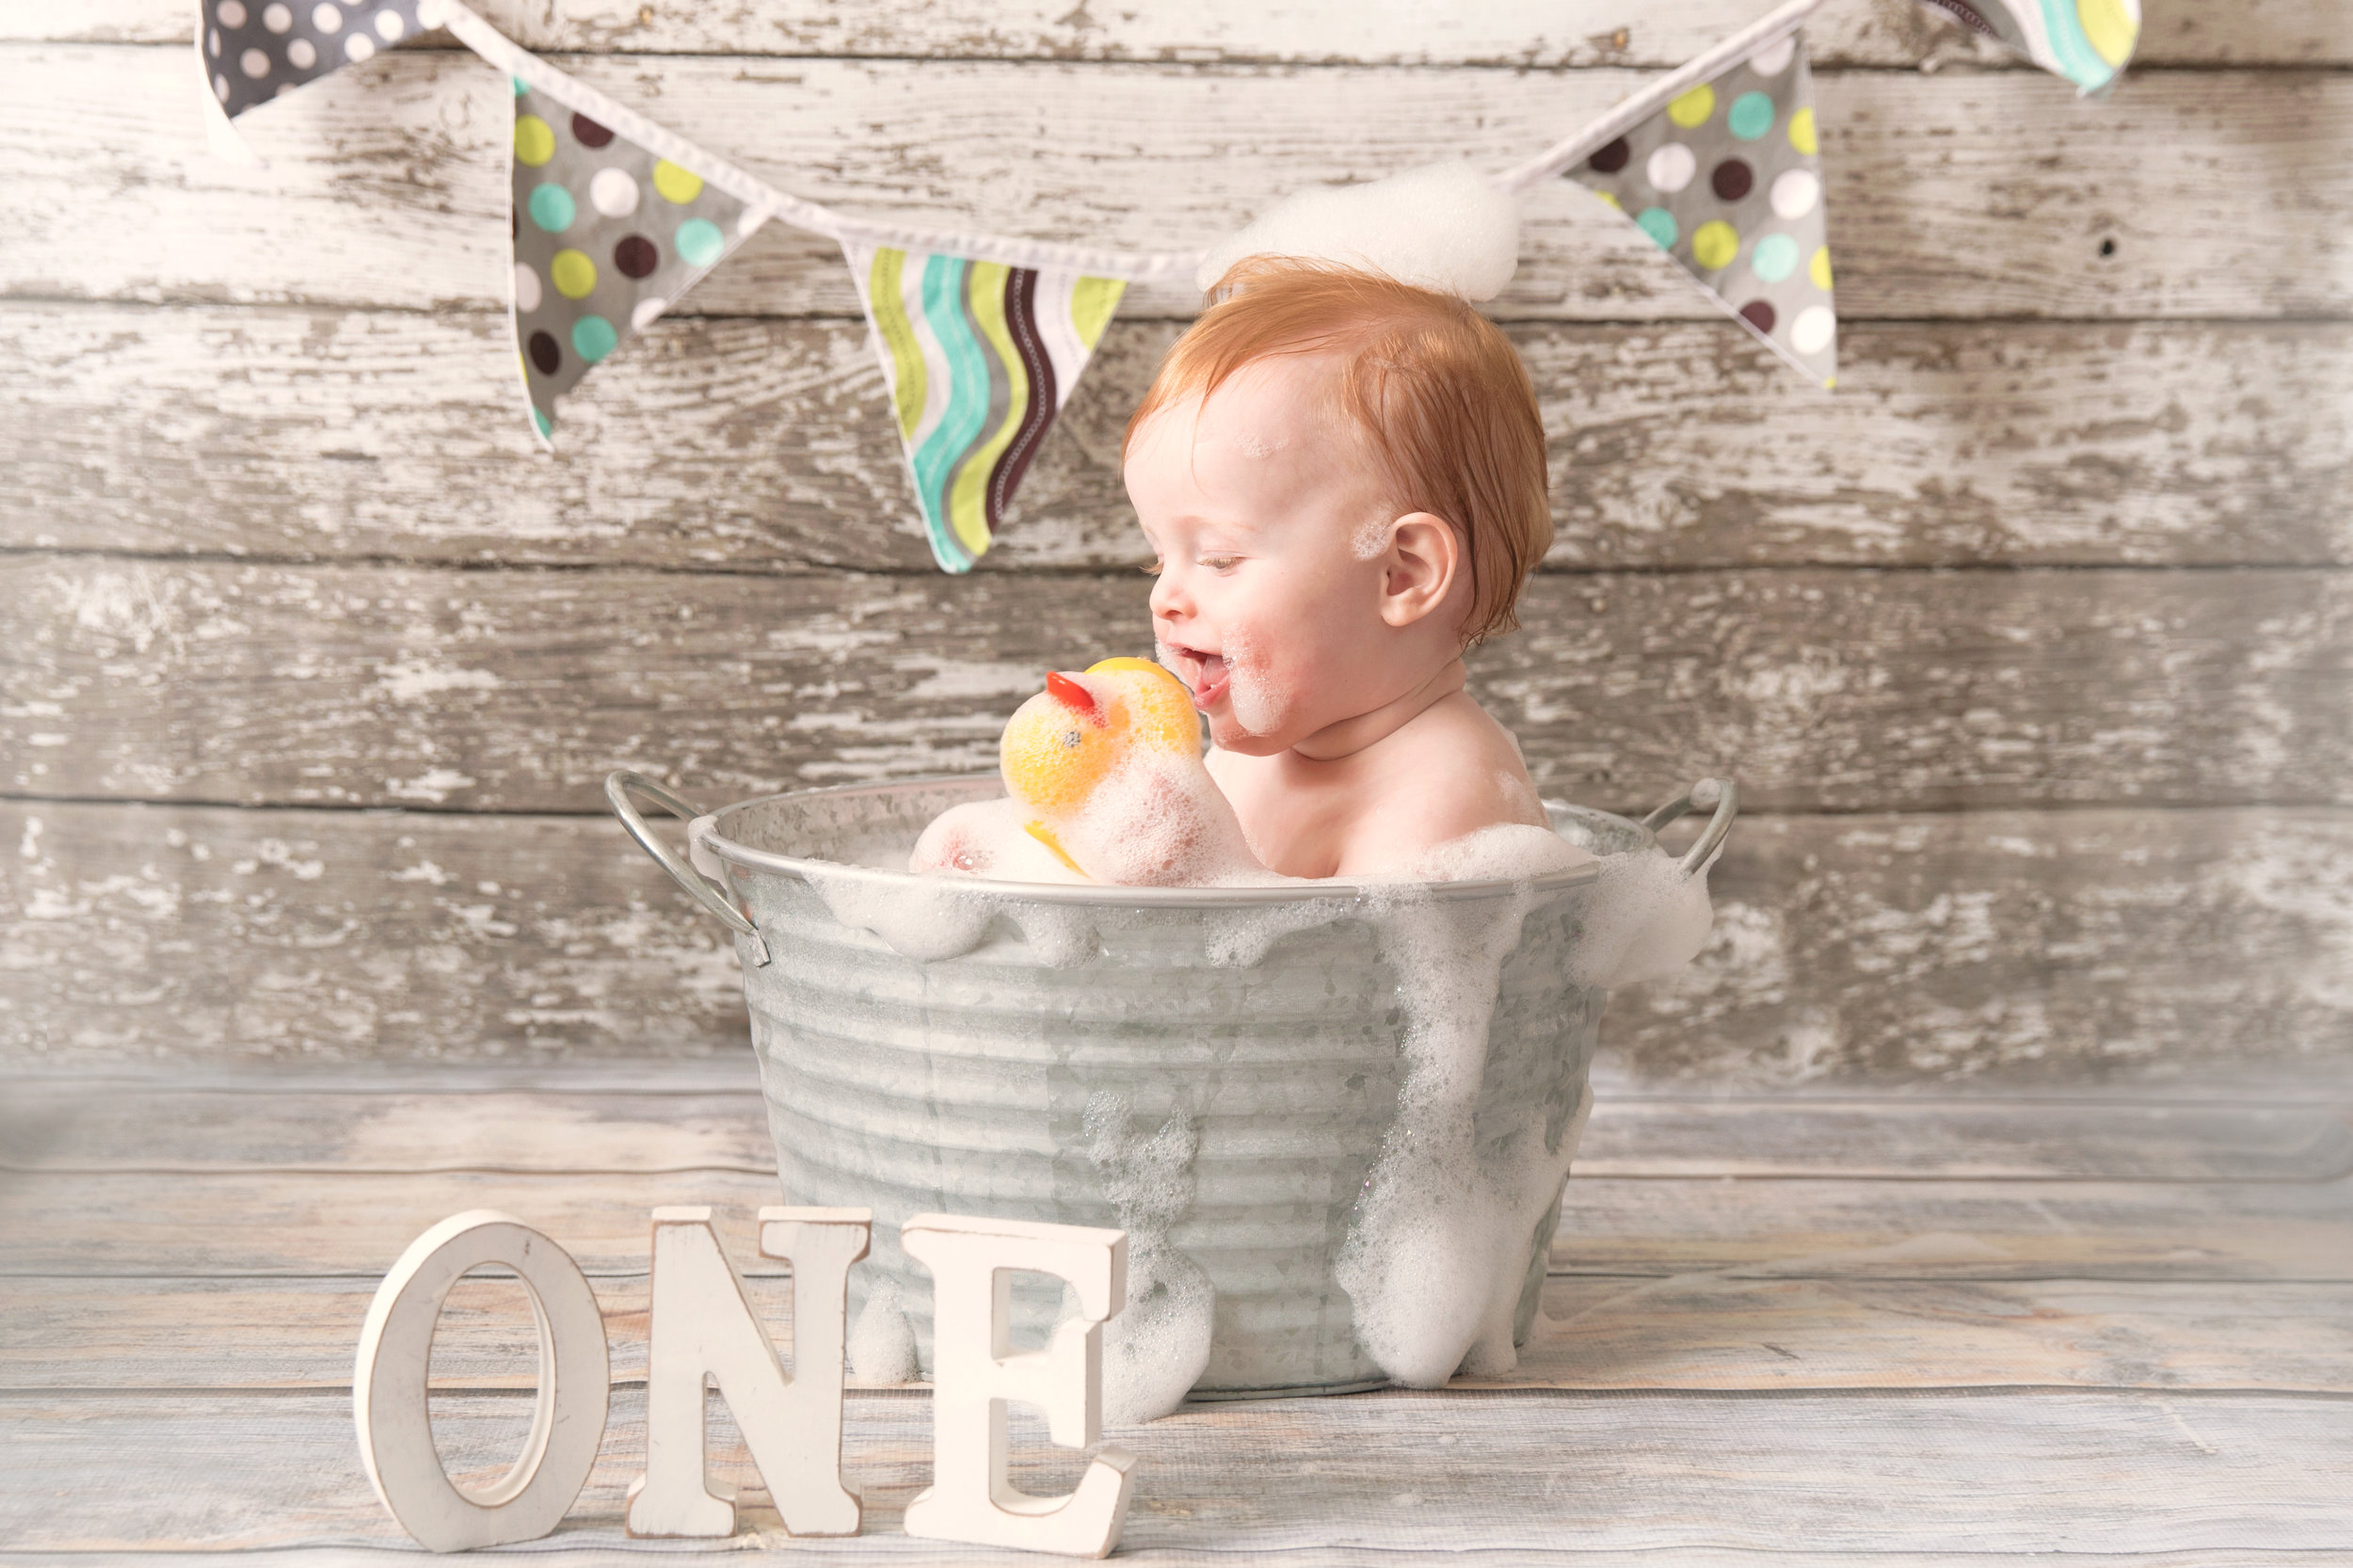 Baby boy enjoying a bubble bath after a successful cakesmash photoshoot. Calgary and Airdrie cakesmash photographer.